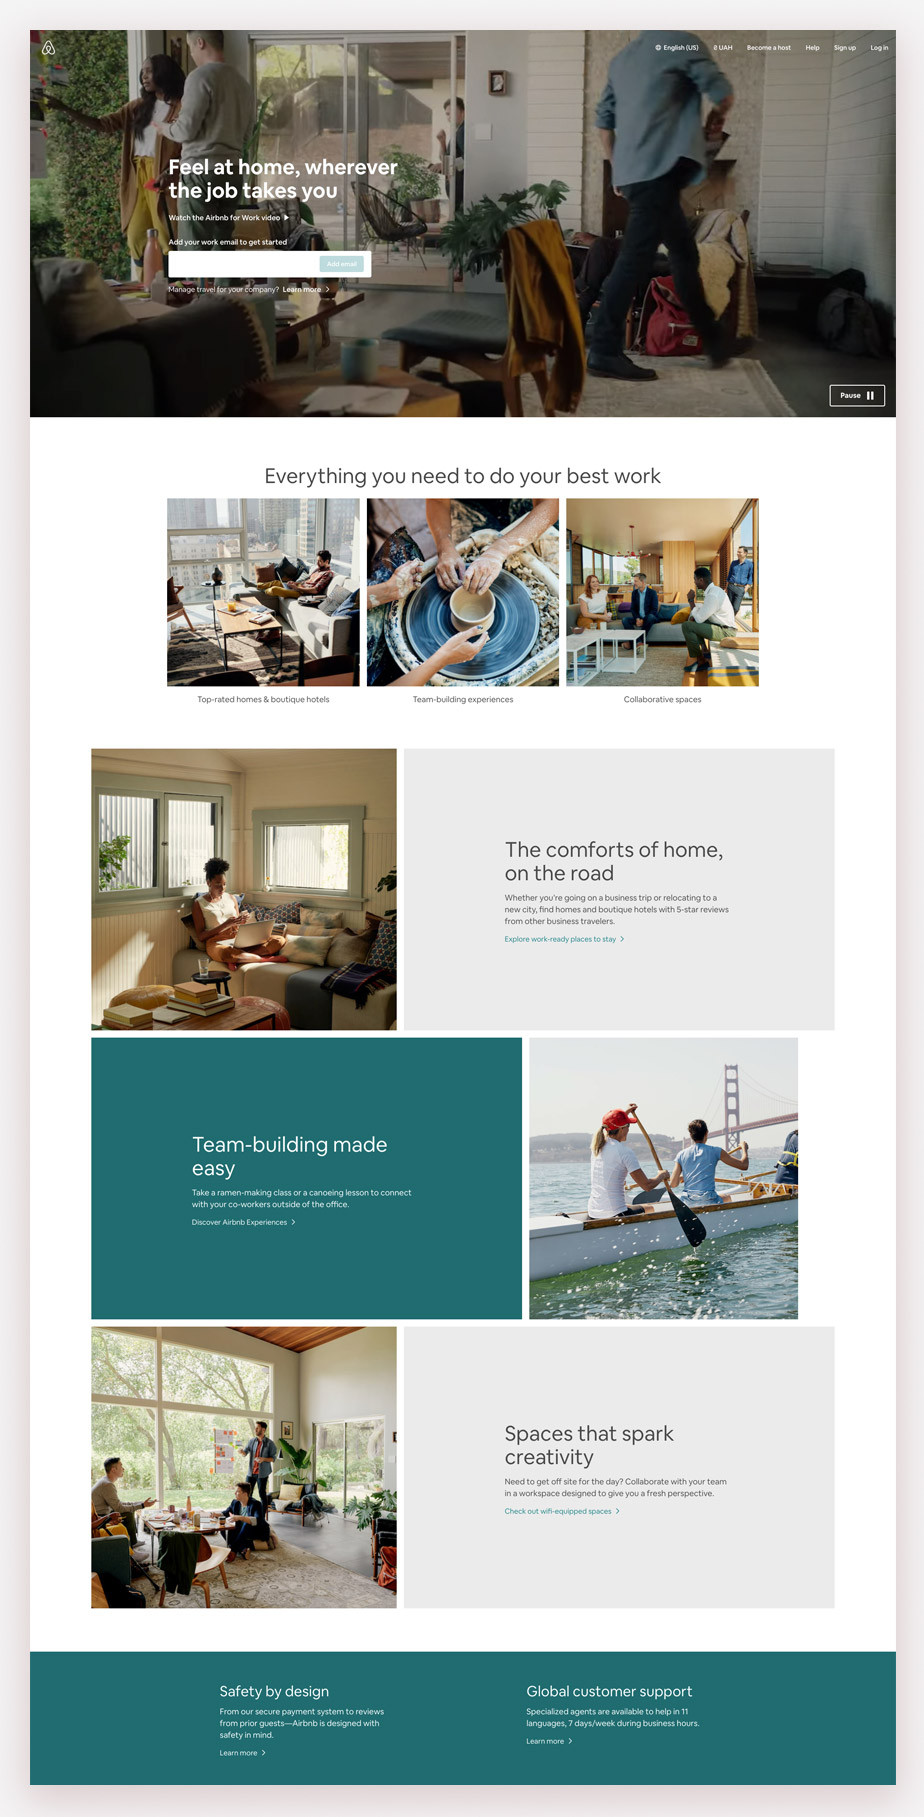 Landing page example by Airbnb